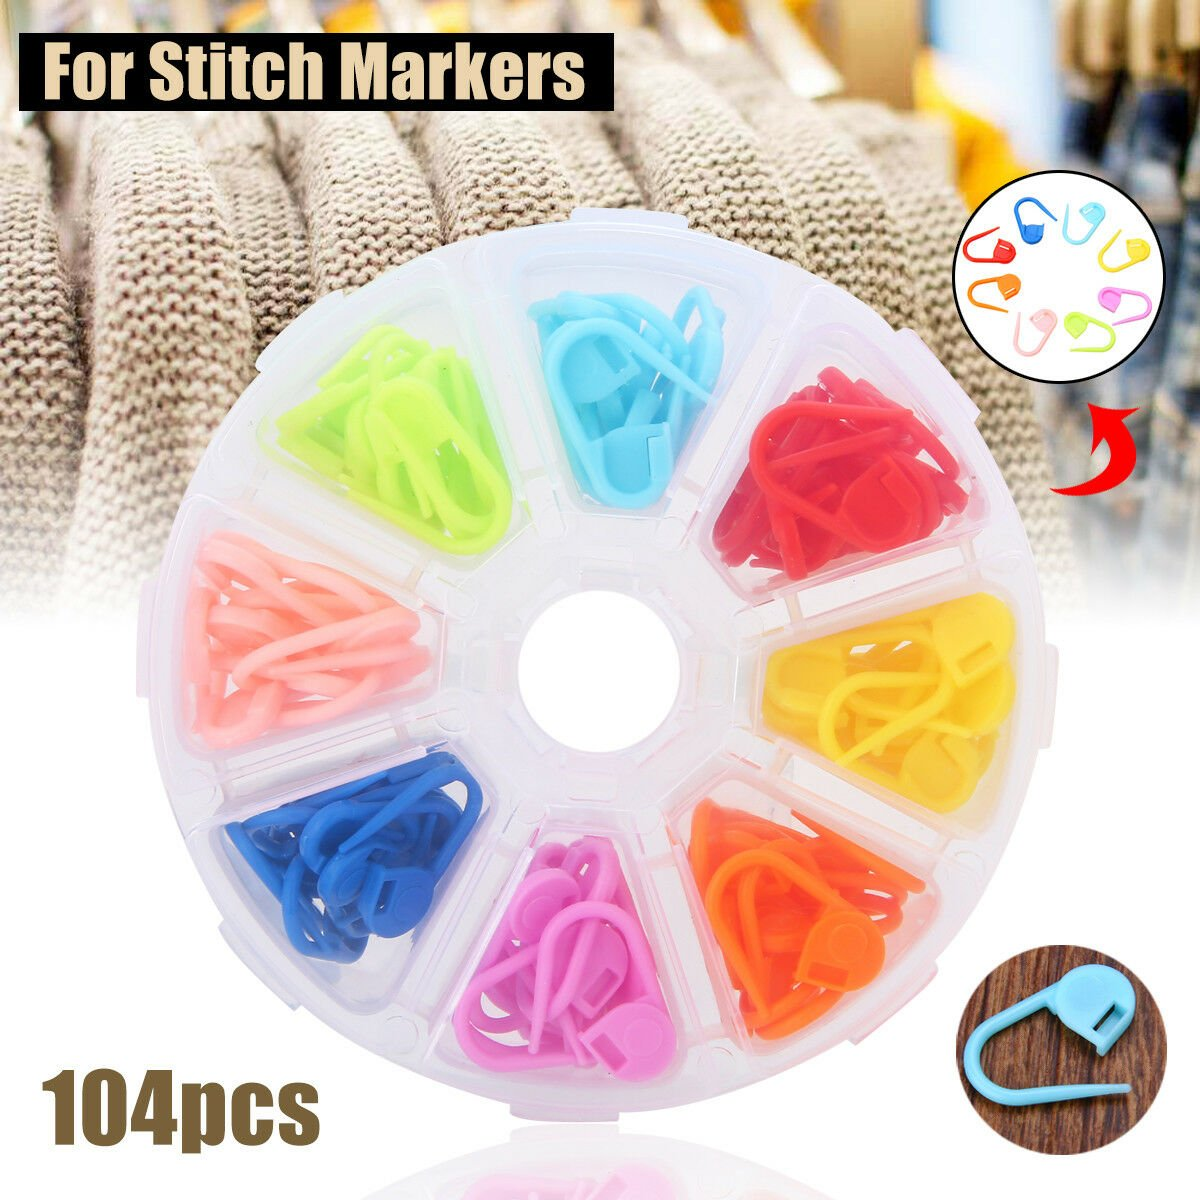 104pcs/set Amazing Knitting Crochet Locking Stitch Needle Clip Markers Holder